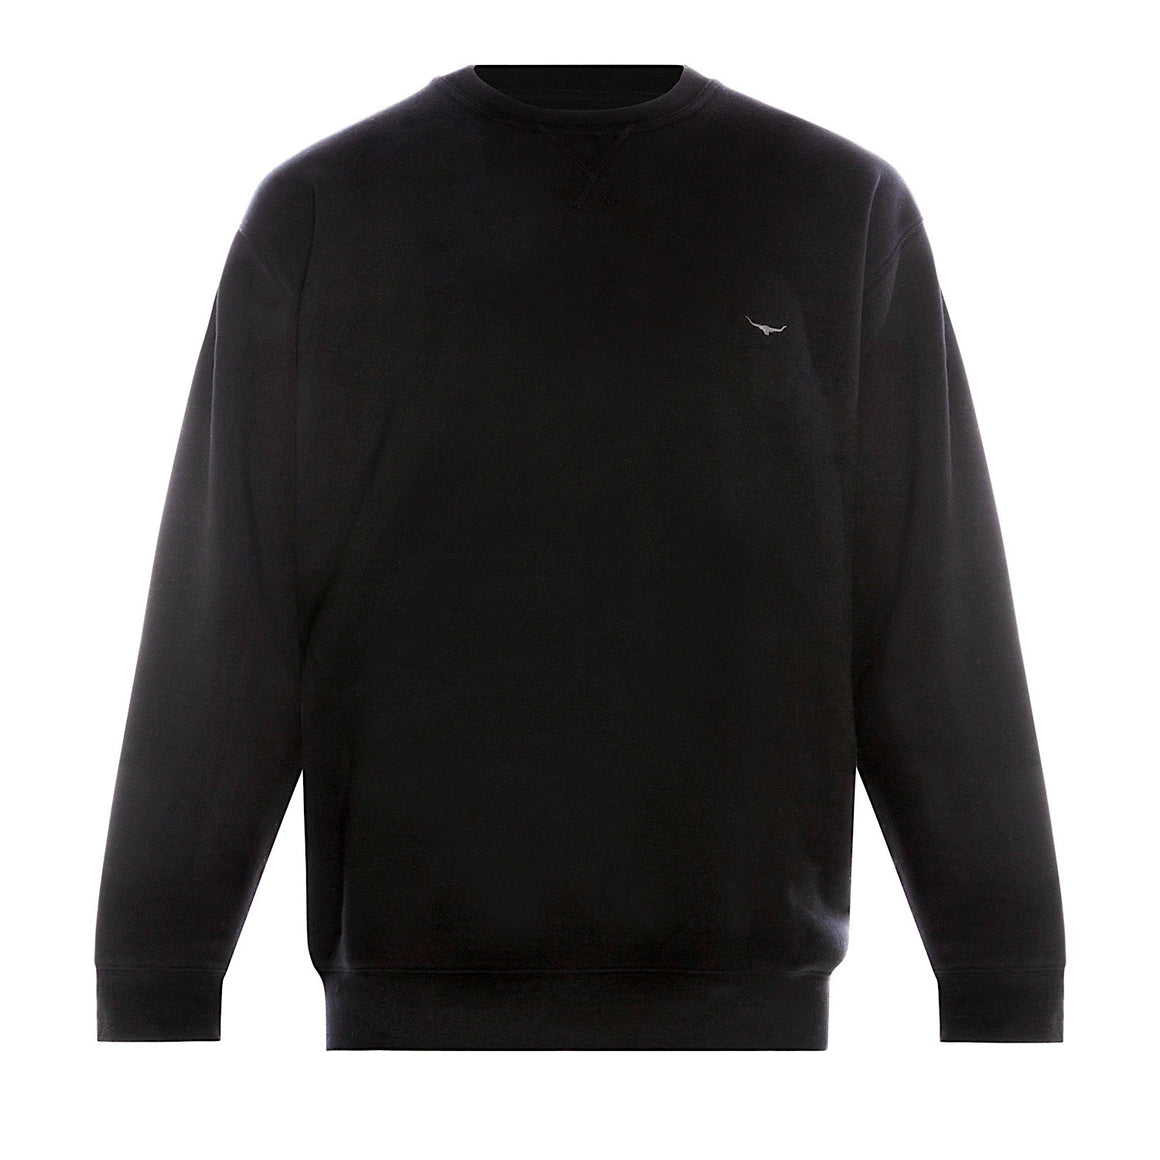 R.M.Williams Varley Crew Neck Fleece Jumper Black